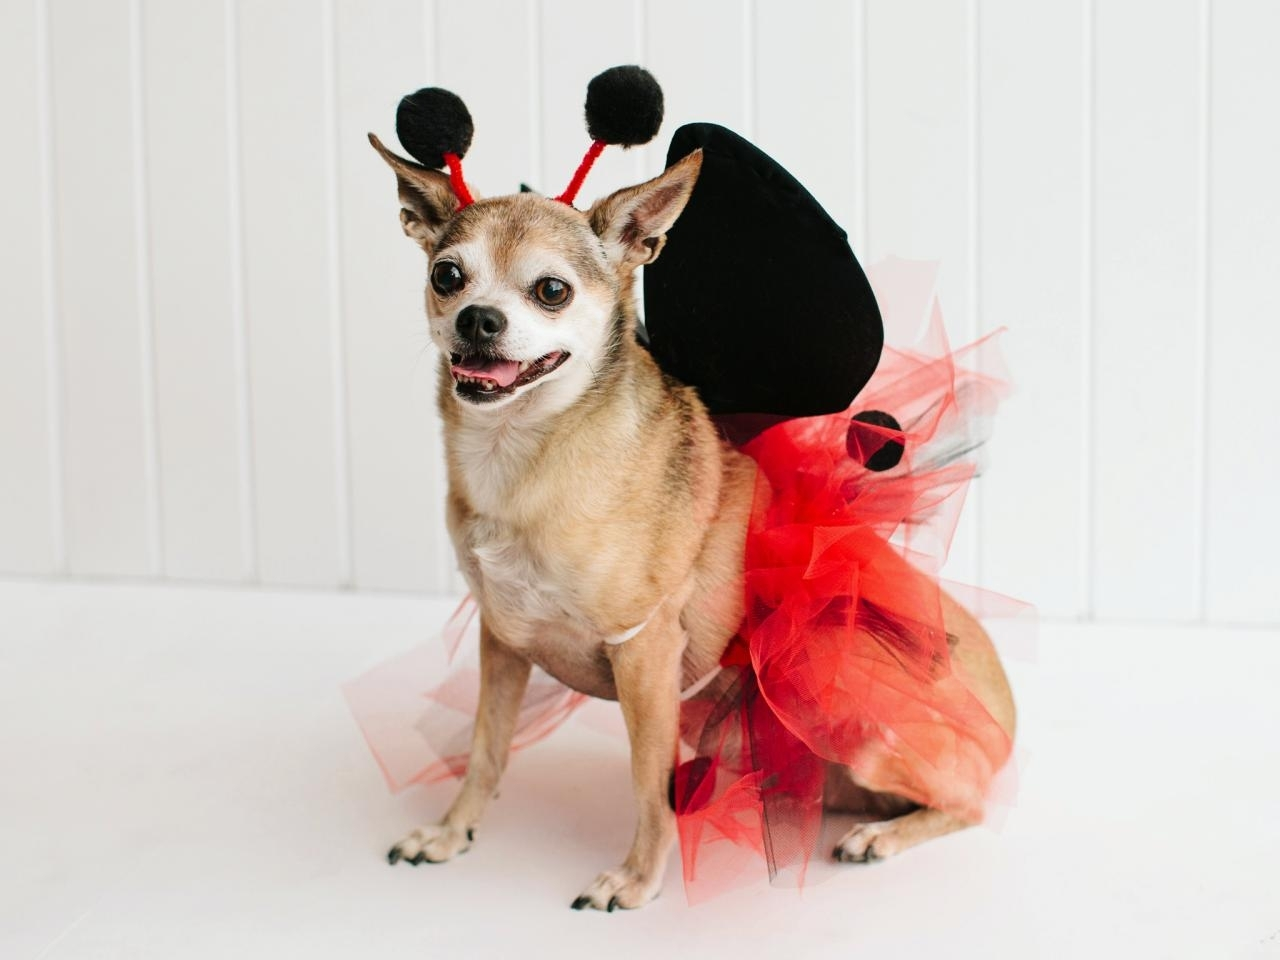 10 Stylish Halloween Costumes For Dogs Ideas %name 2020